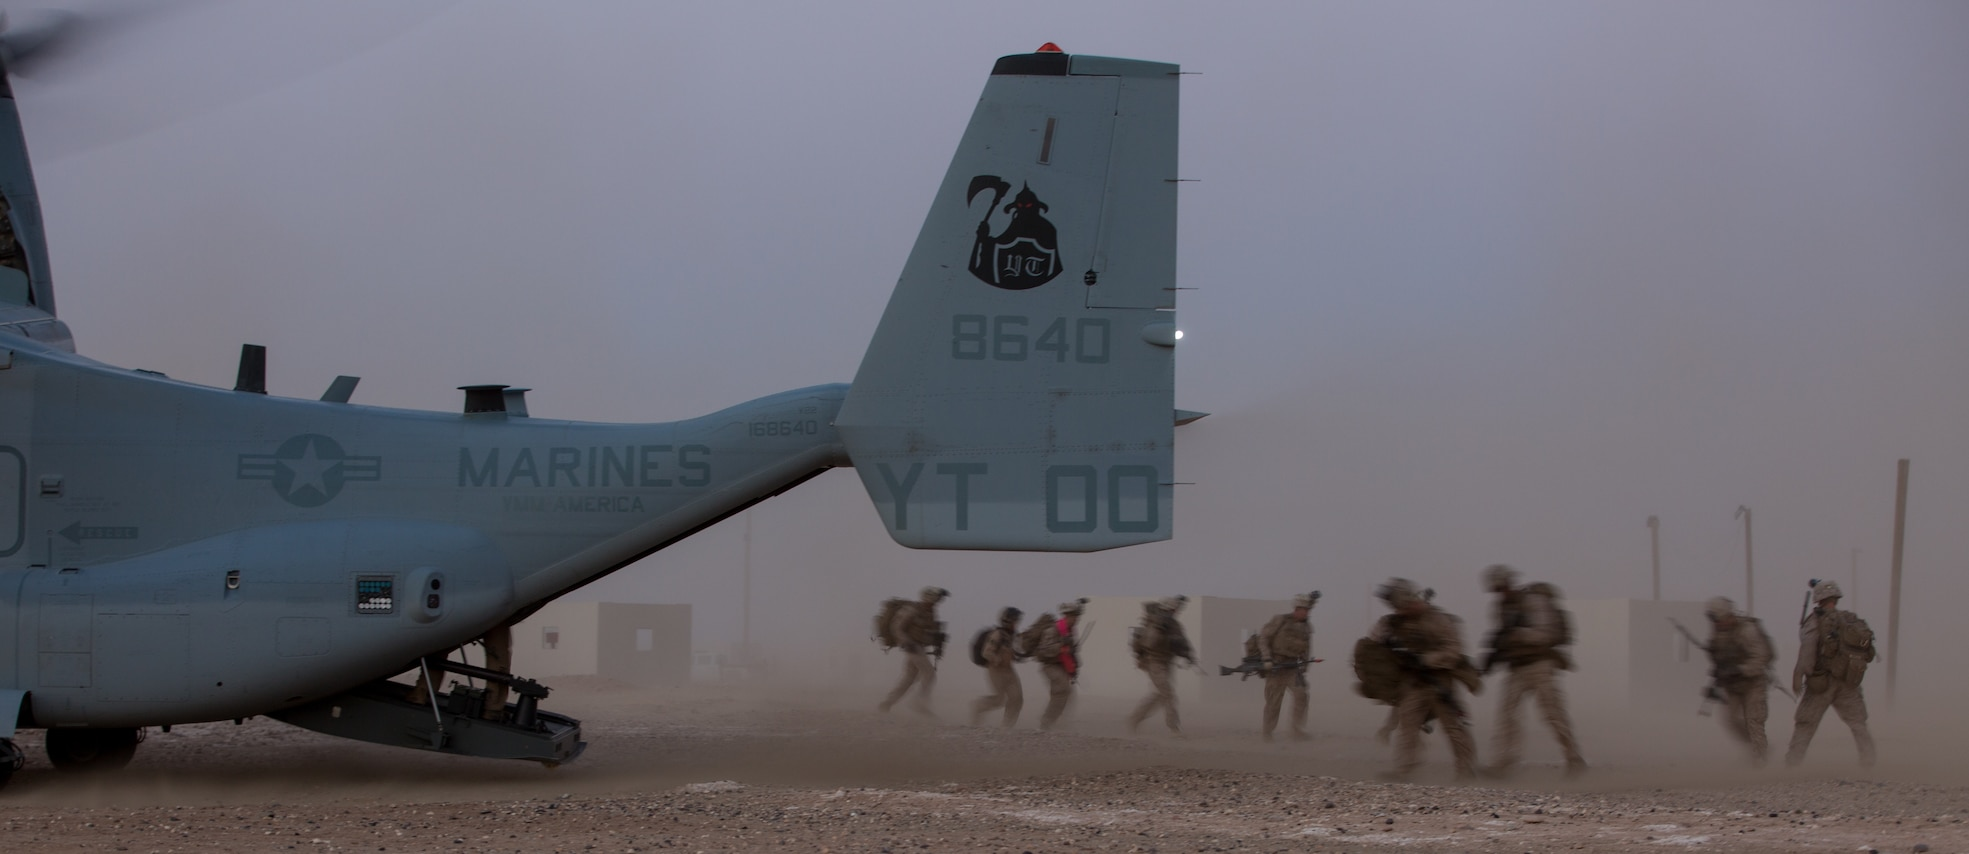 UNDISCLOSED LOCATION, SOUTHWEST ASIA – U.S. Marines with India Company 3rd Battalion, 7th Marine Regiment, 1st Marine Division attached to Special Purpose Marine Air-Ground Task Force, Crisis Response-Central Command board an MV-22 Osprey during a tactical recovery of aircraft and personnel exercise August 19, 2018. The training exercise provided Marines the opportunity to enhance combat readiness and crisis response skills. (U.S. Marine Corps photo by Cpl. Teagan Fredericks)